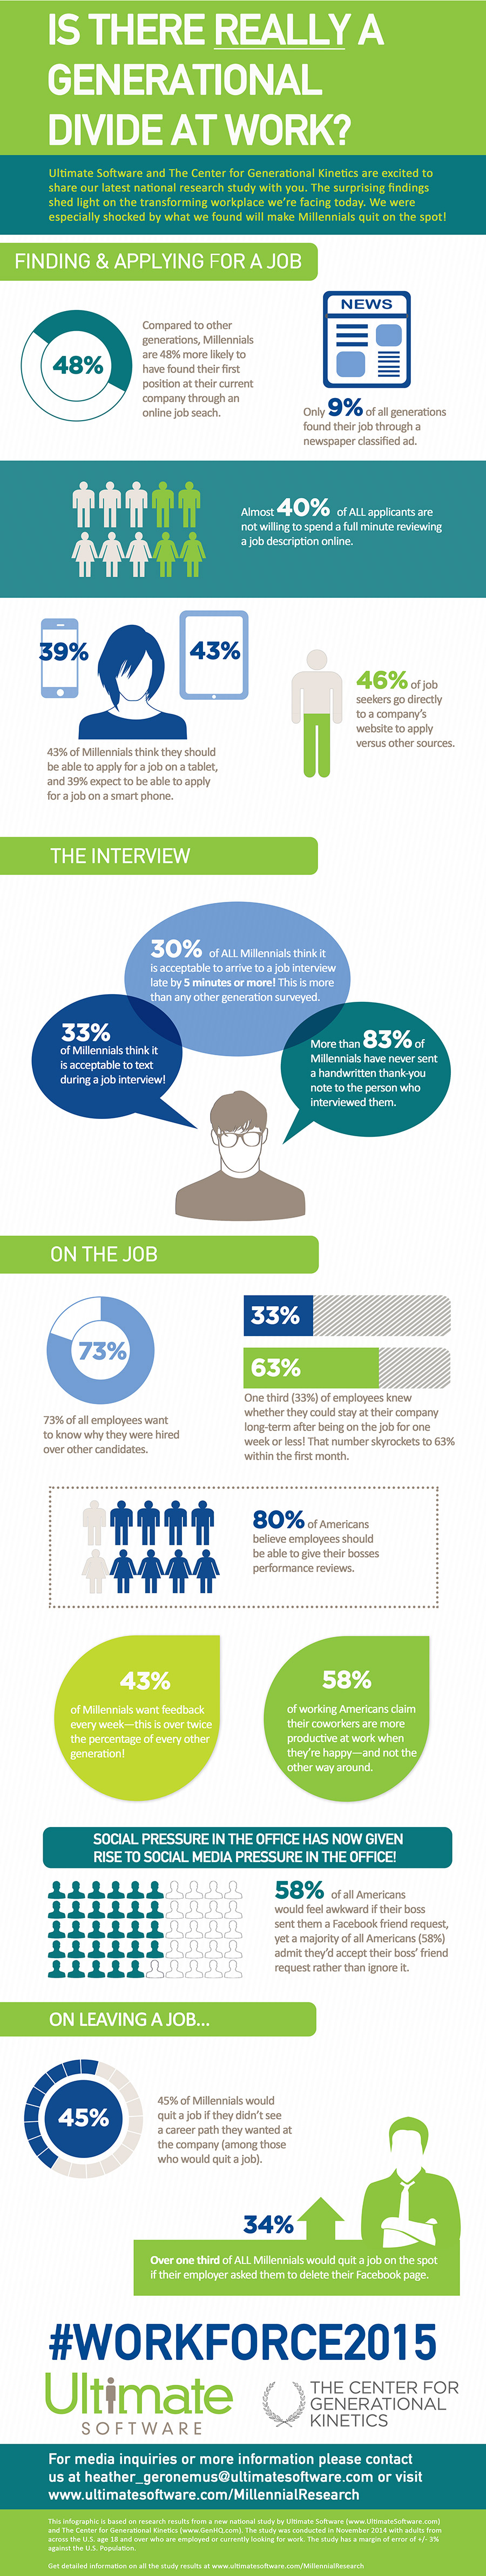 Is There Really a Generational Divide at Work?